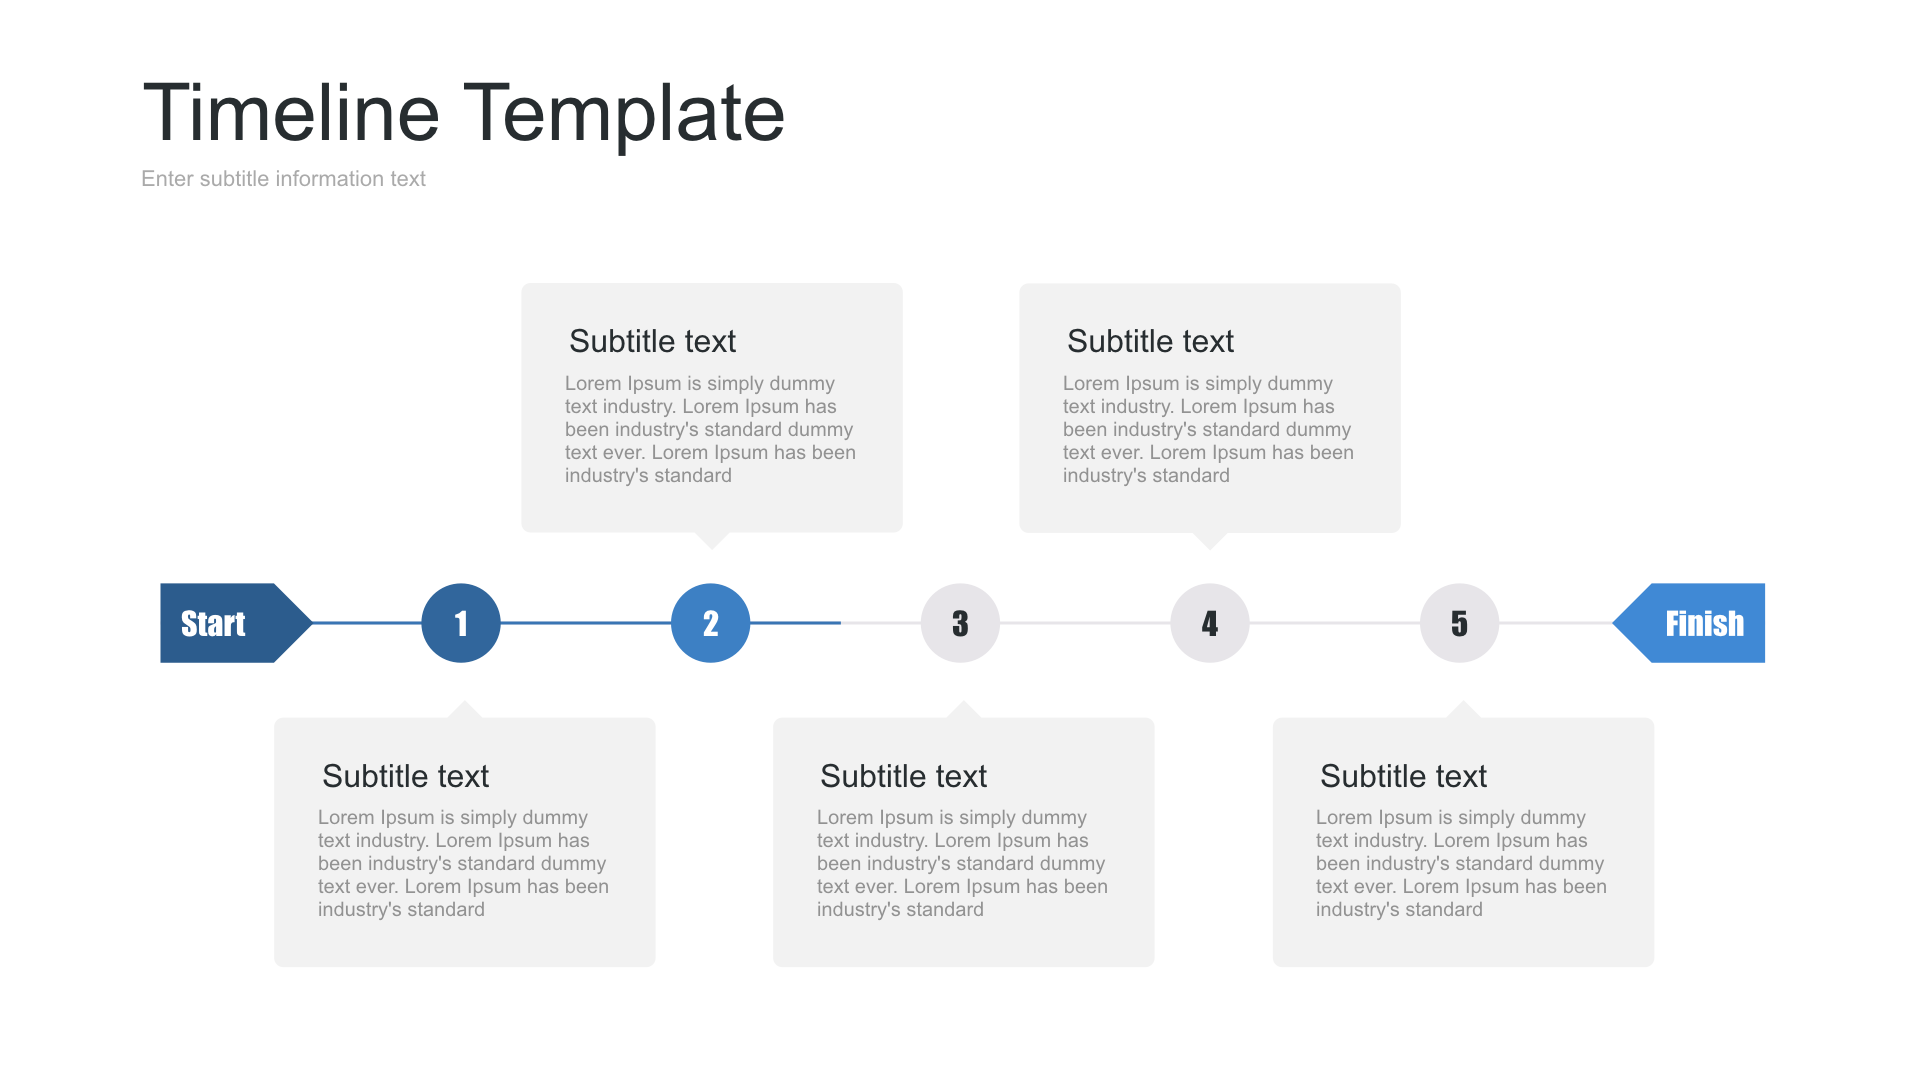 Timeline Pack Keynote Template By Sitemax GraphicRiver - Timeline template keynote